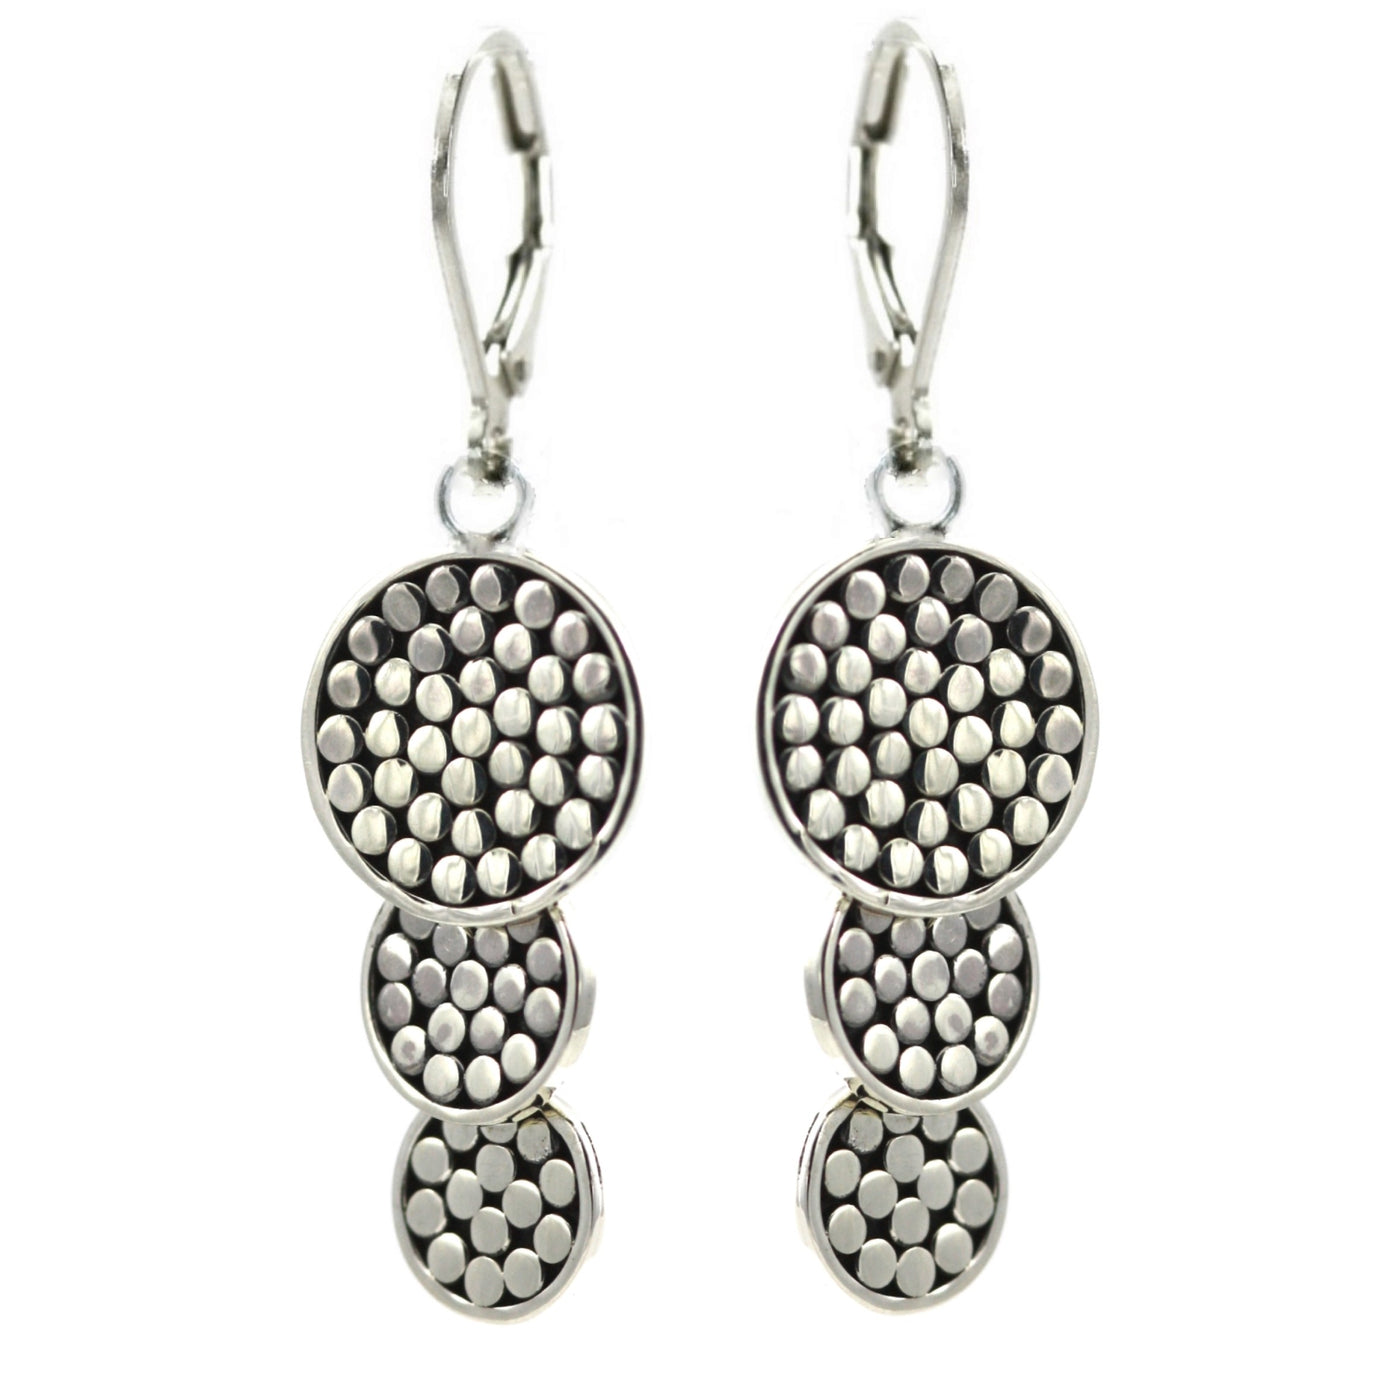 ID E841 TRIPLE DISC EARRINGS